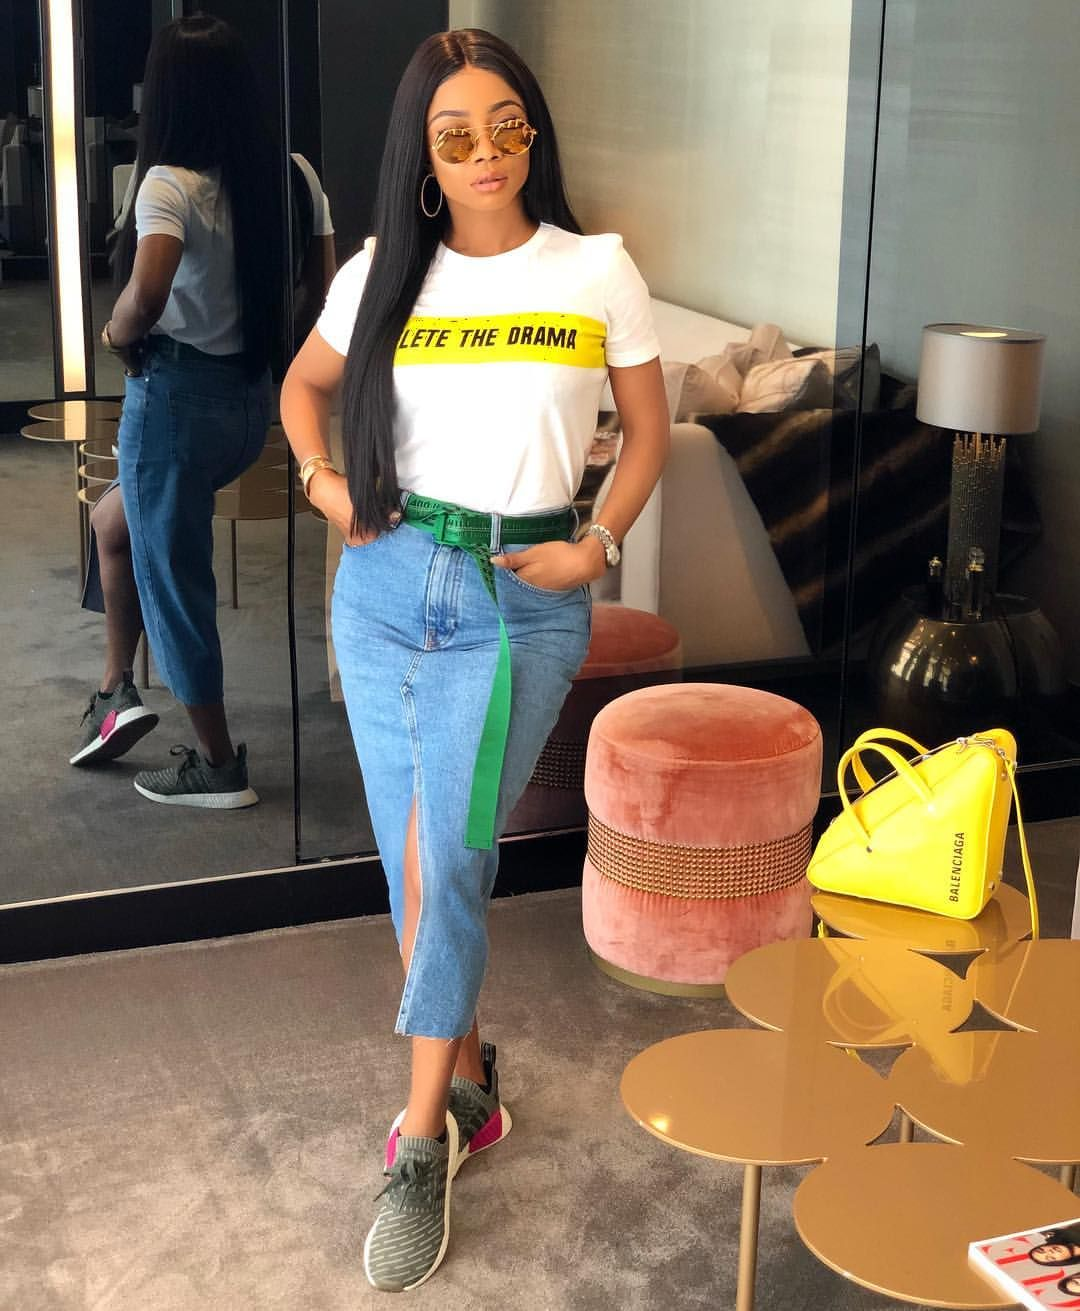 cd4fec88b5c2 Off- White X Adidas X Linda Farrow 💛💛💛. Dripping drip drip. Toke makinwa  in denim skirt. How to wear denim skirt. How to wear jeans skirt.